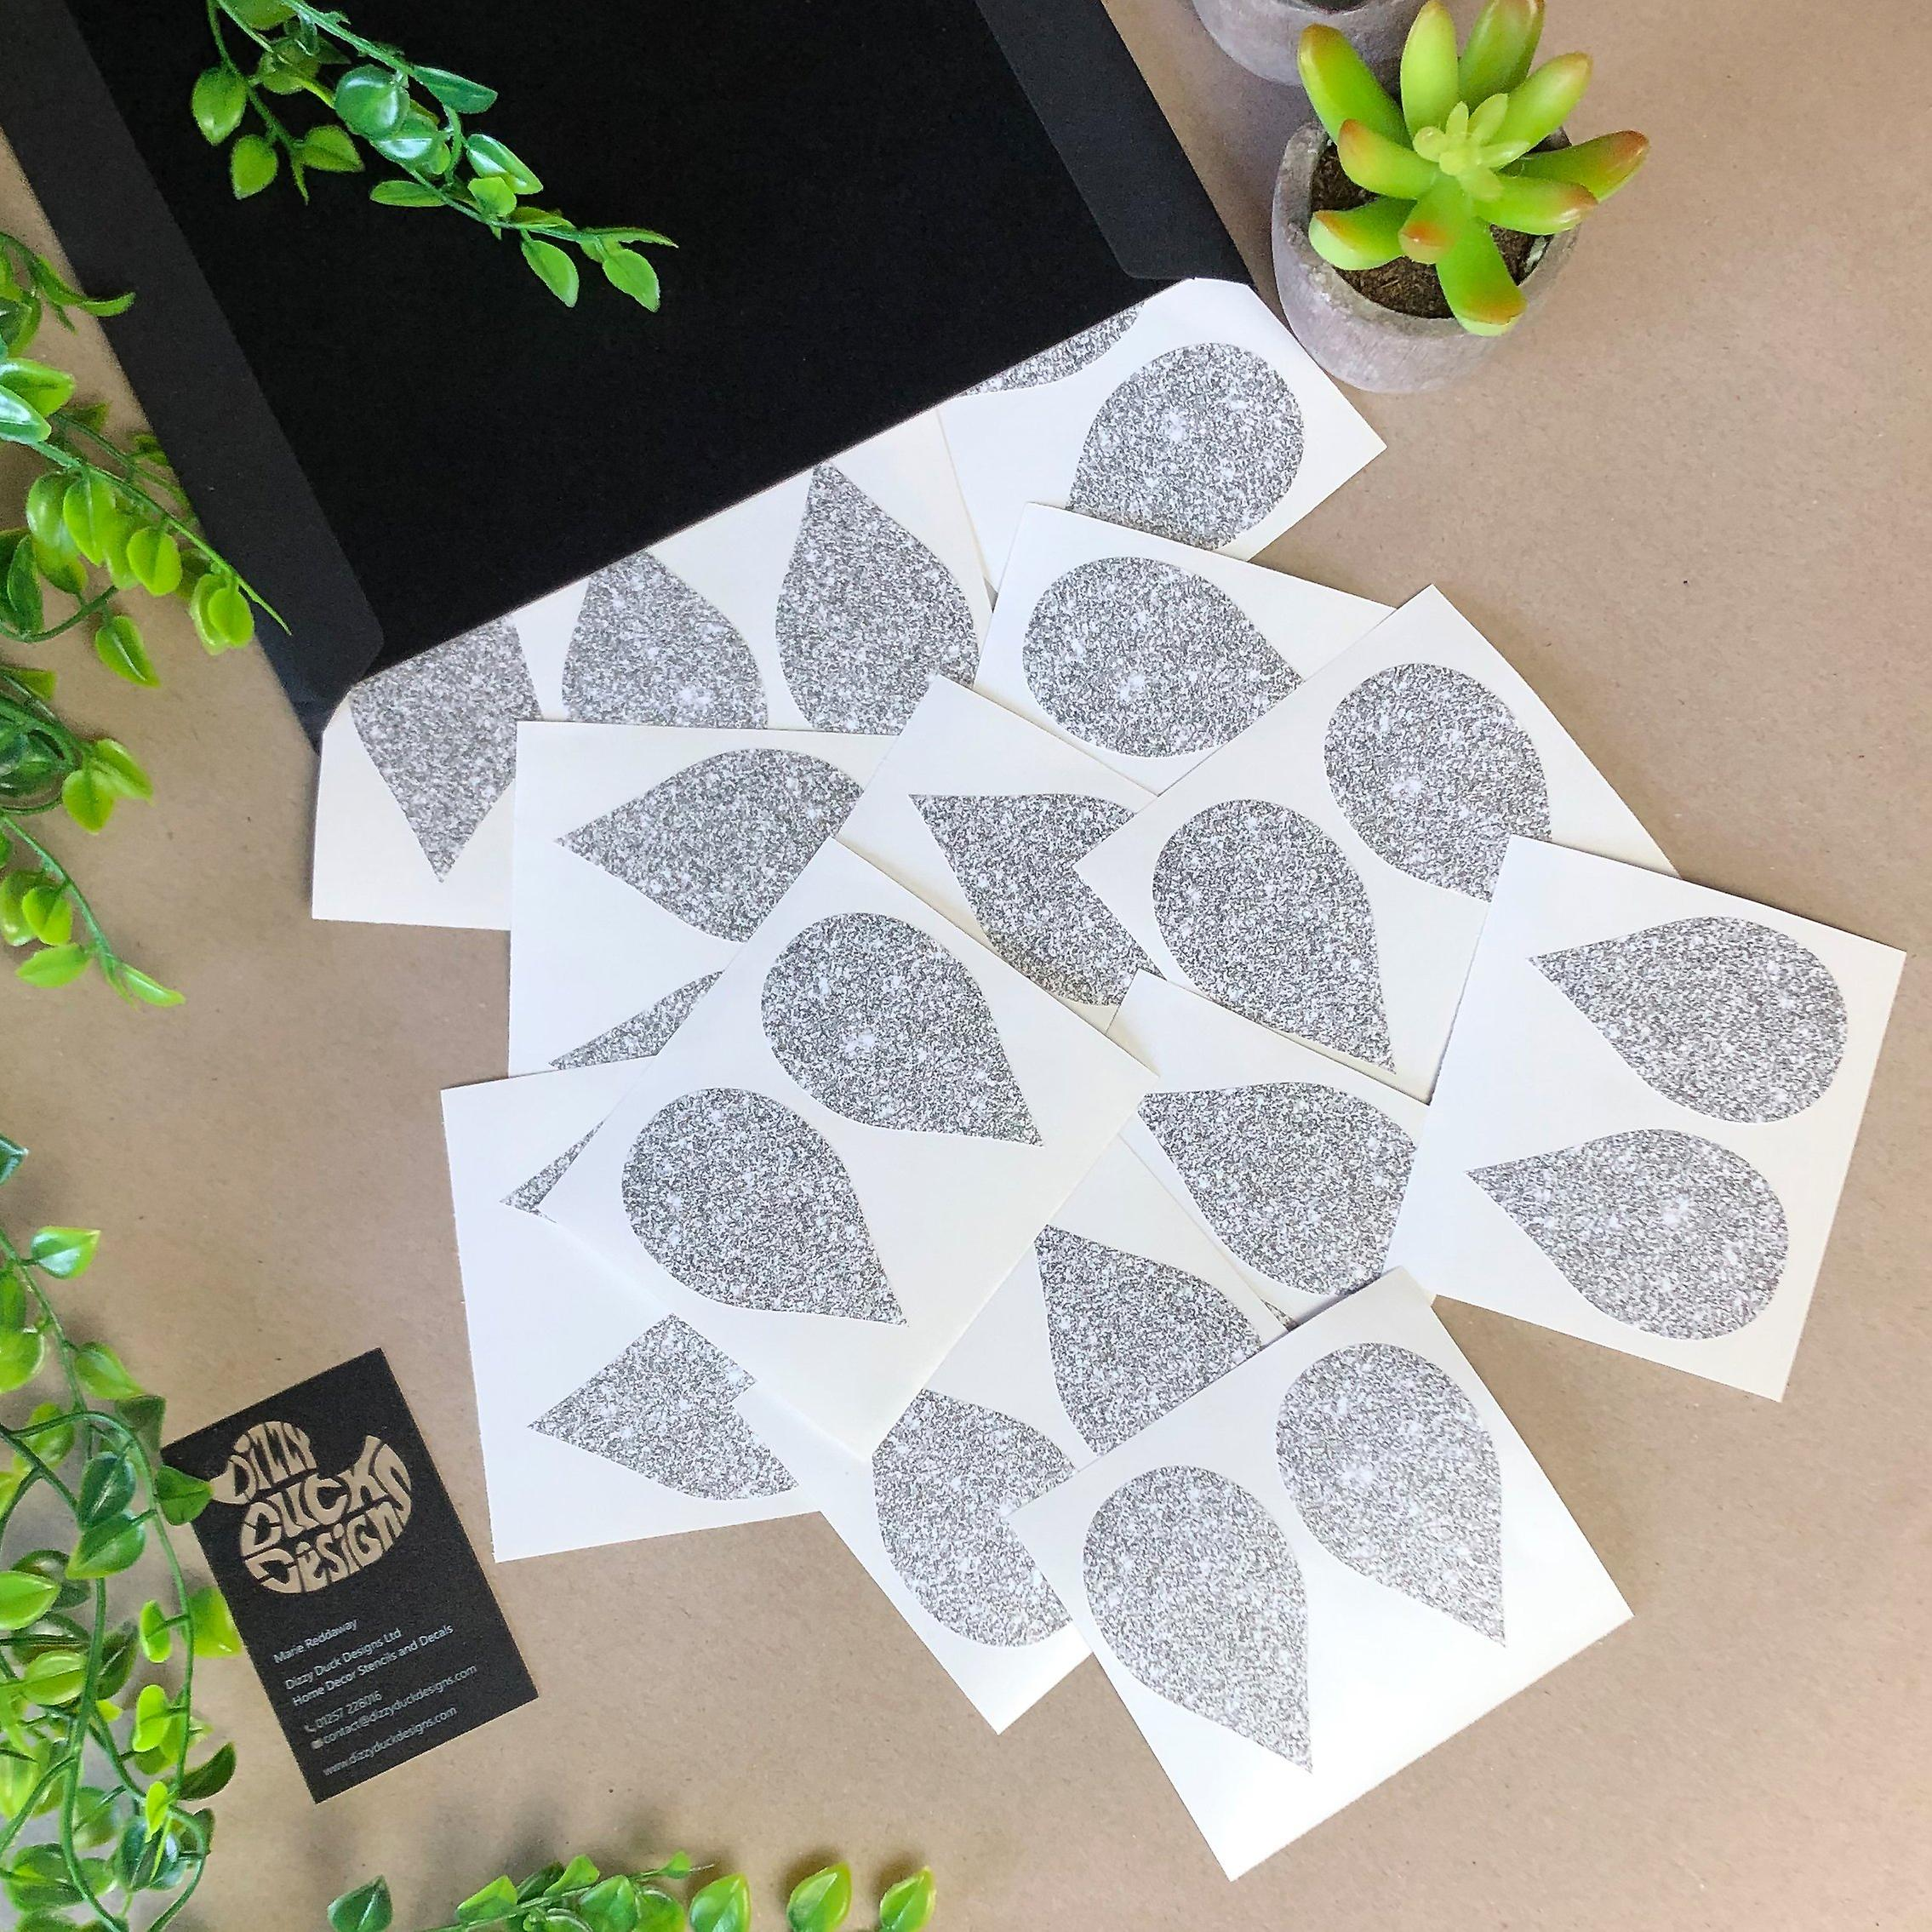 Silver glitter effect tear drop decals